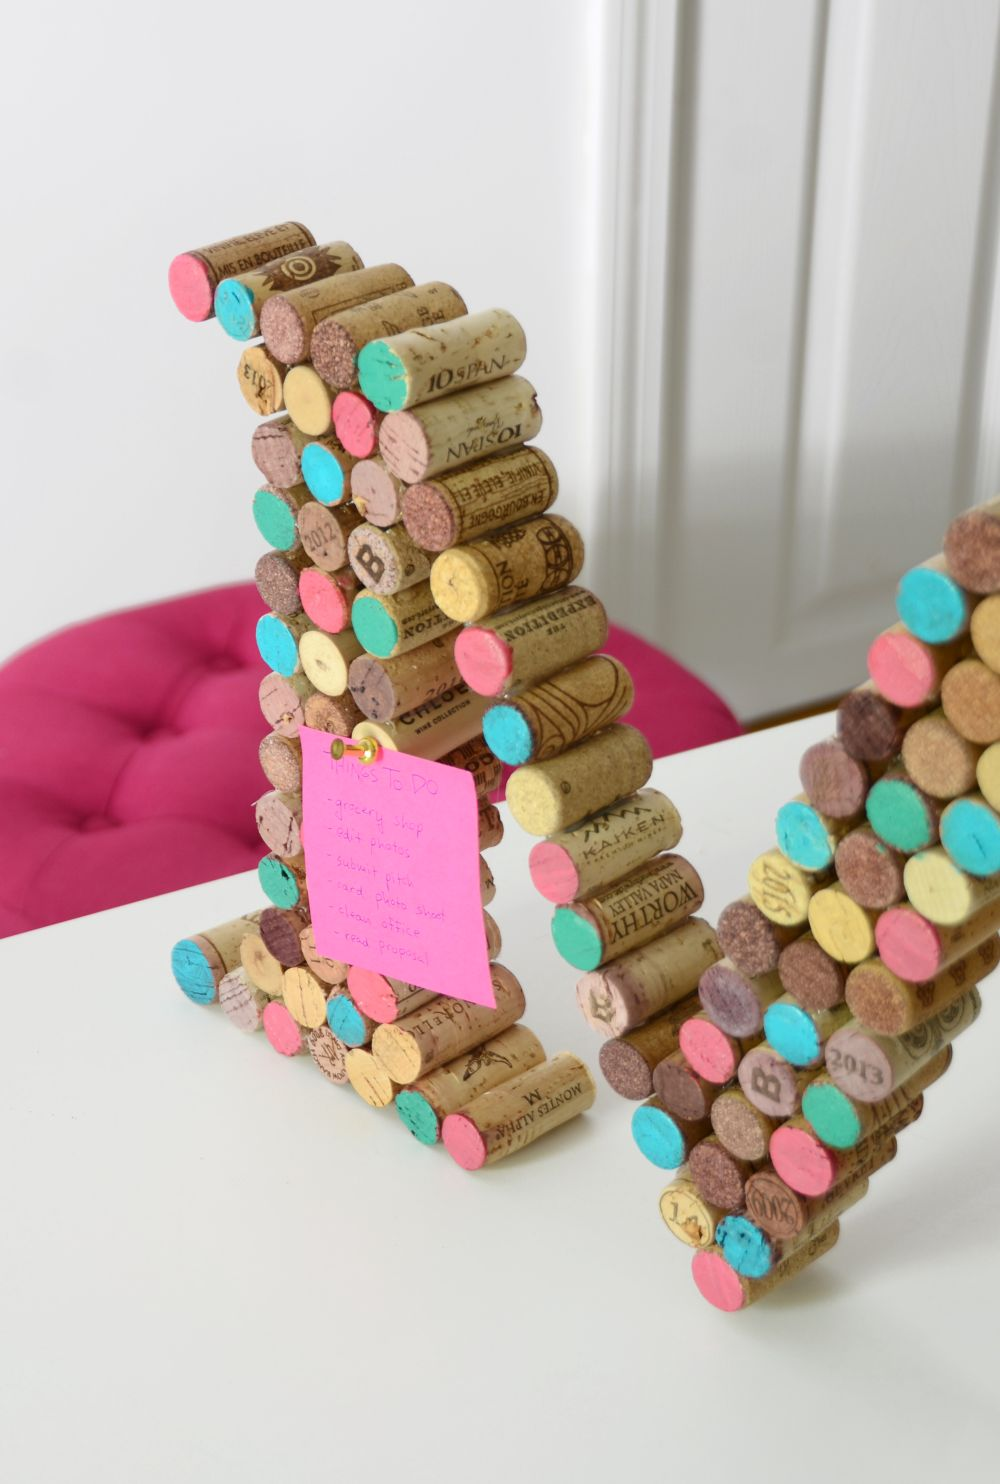 1570793179 490 15 cool little projects you can do with cork - 15 Cool Little Projects You Can Do With Cork